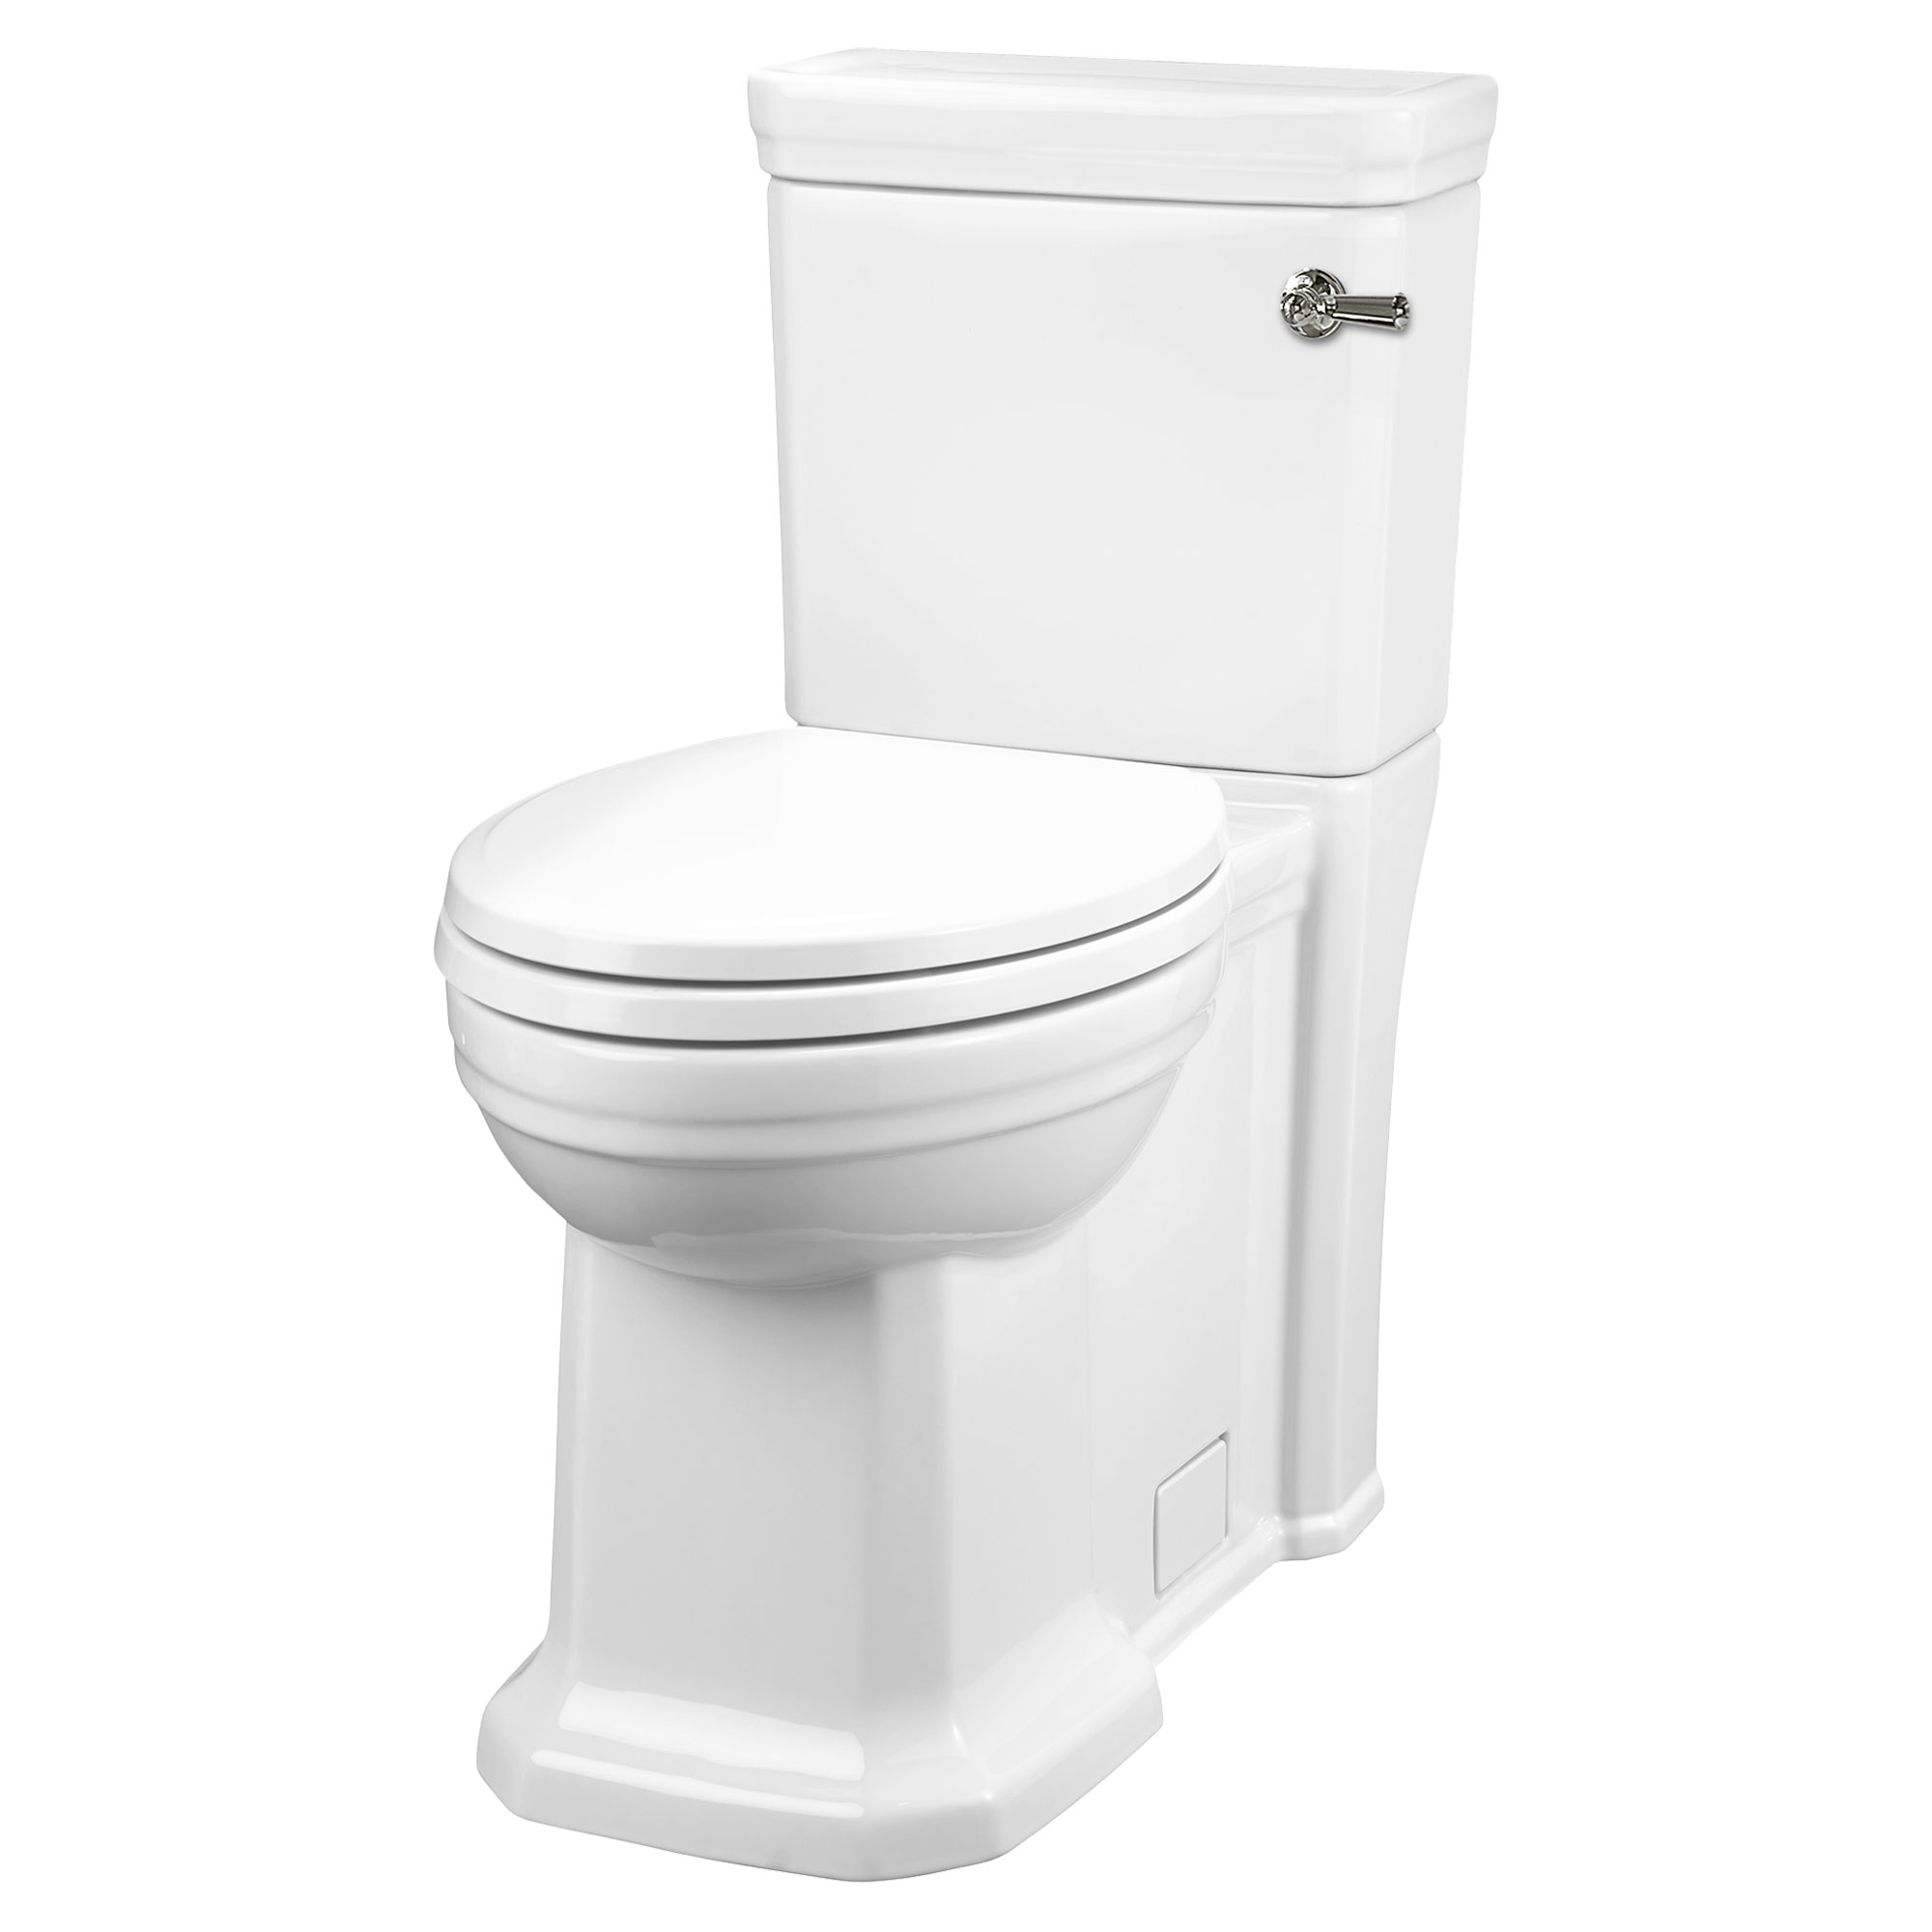 10 Inch Rough In Toilet Canada Toilets Dxv Luxury One Piece And Two Piece Toilets